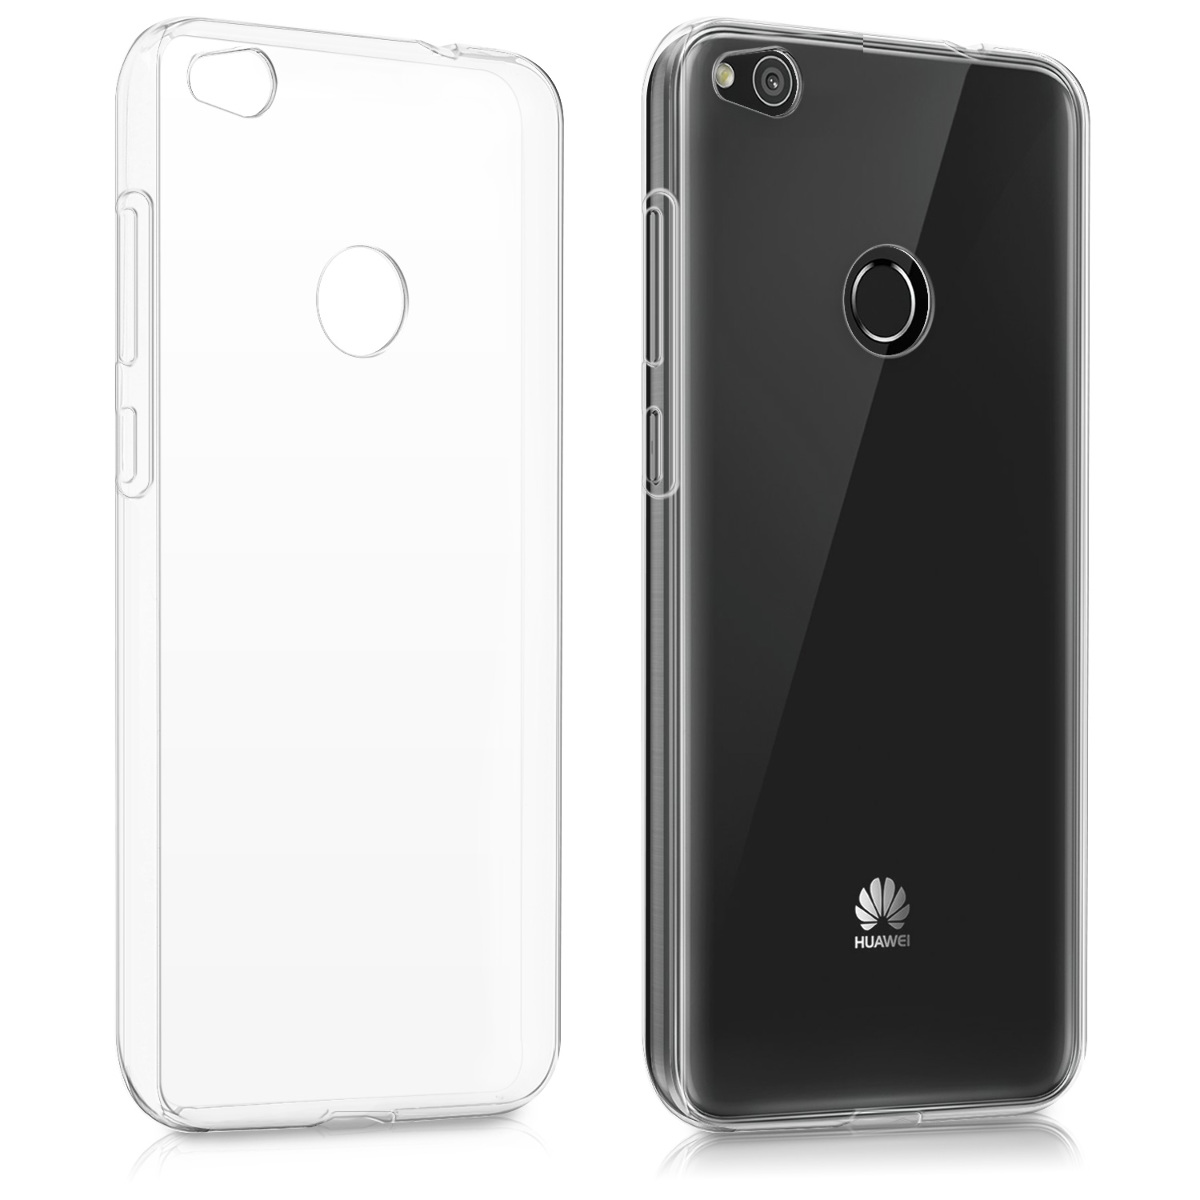 kwmobile tpu silicone crystal case for huawei p8 lite 2017 transparent soft ebay. Black Bedroom Furniture Sets. Home Design Ideas